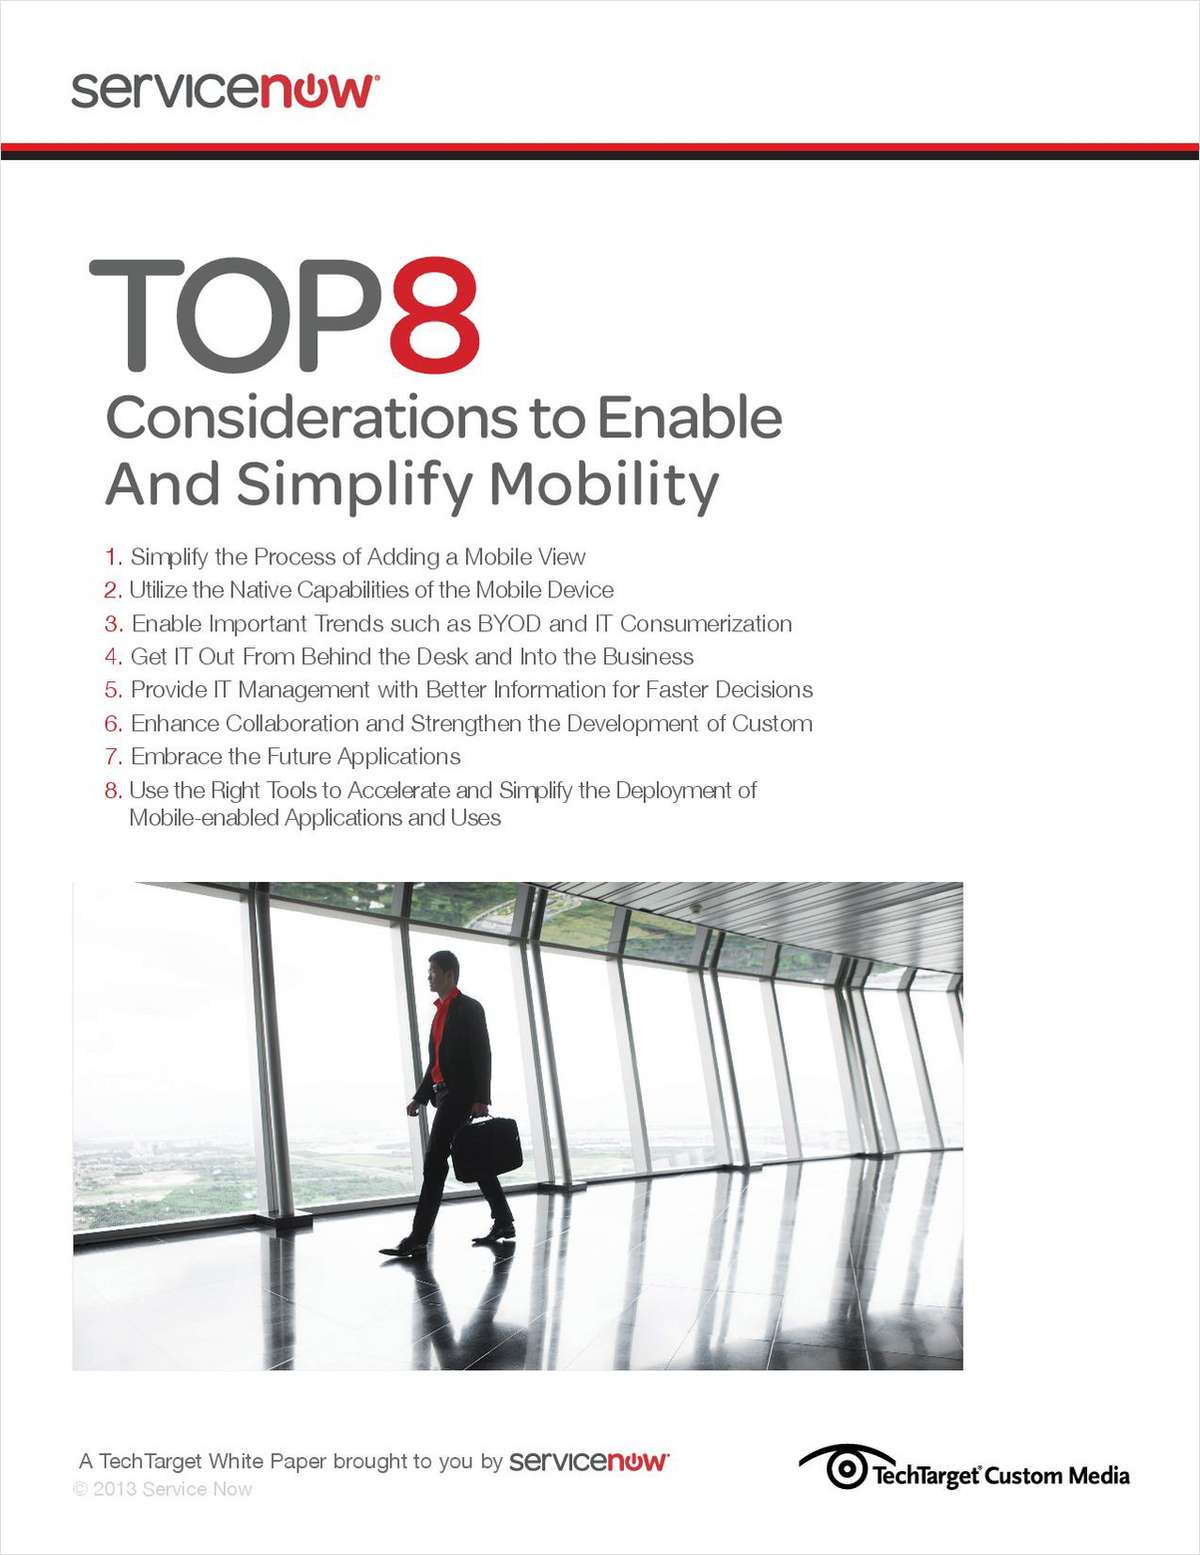 Top 8 Considerations to Enable and Simplify Mobility